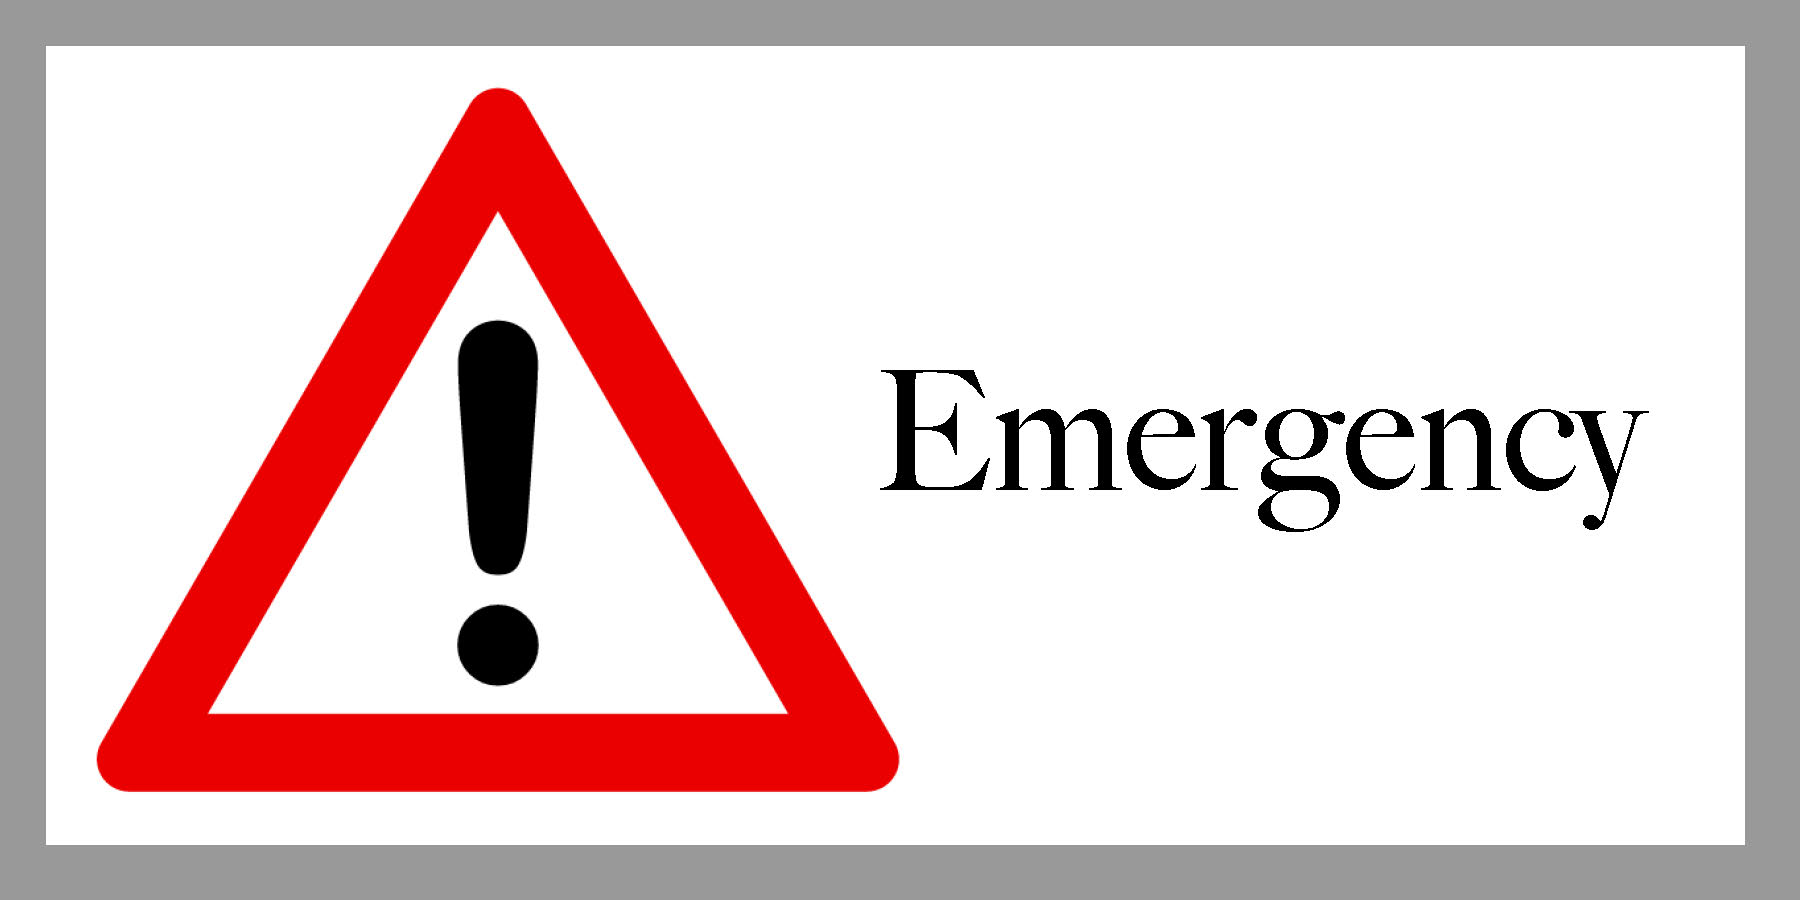 Clickable emergency emblem